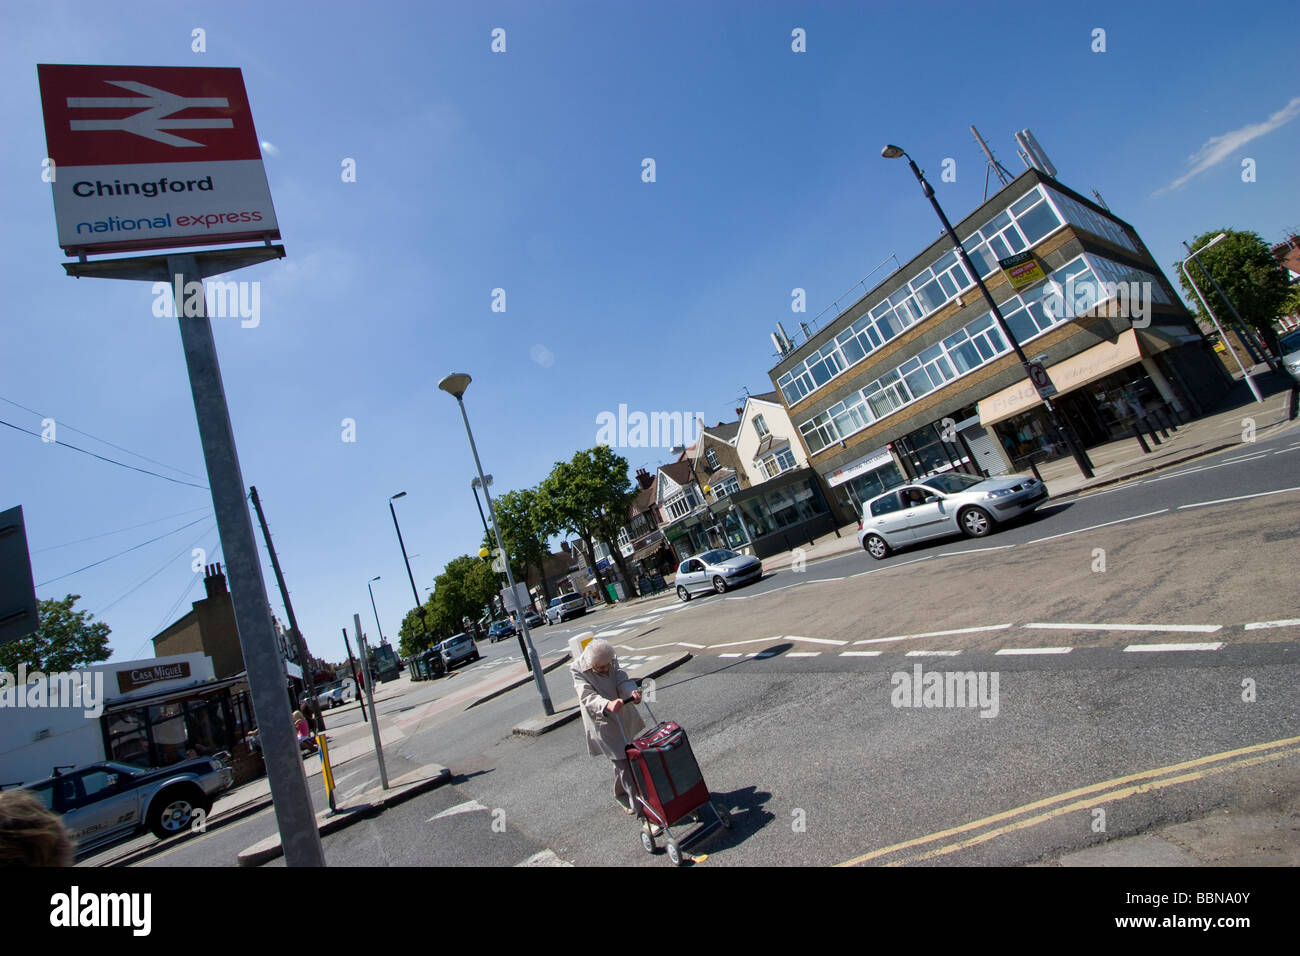 street scene in Chingford London on Essex border with elderly lady pushing trolley, and chingford railway station - Stock Image